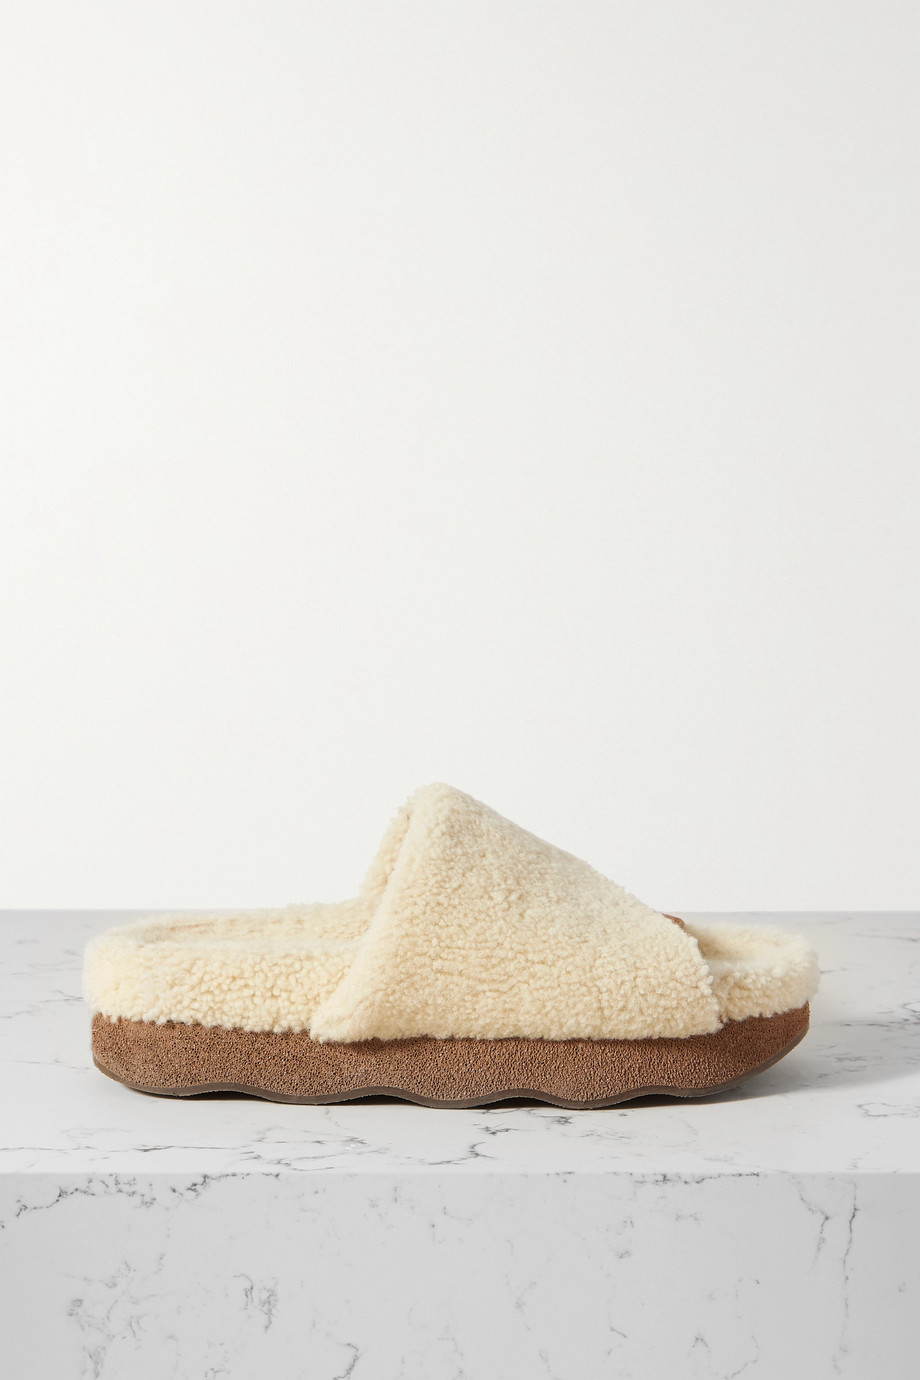 Chloé Wavy shearing and suede slides